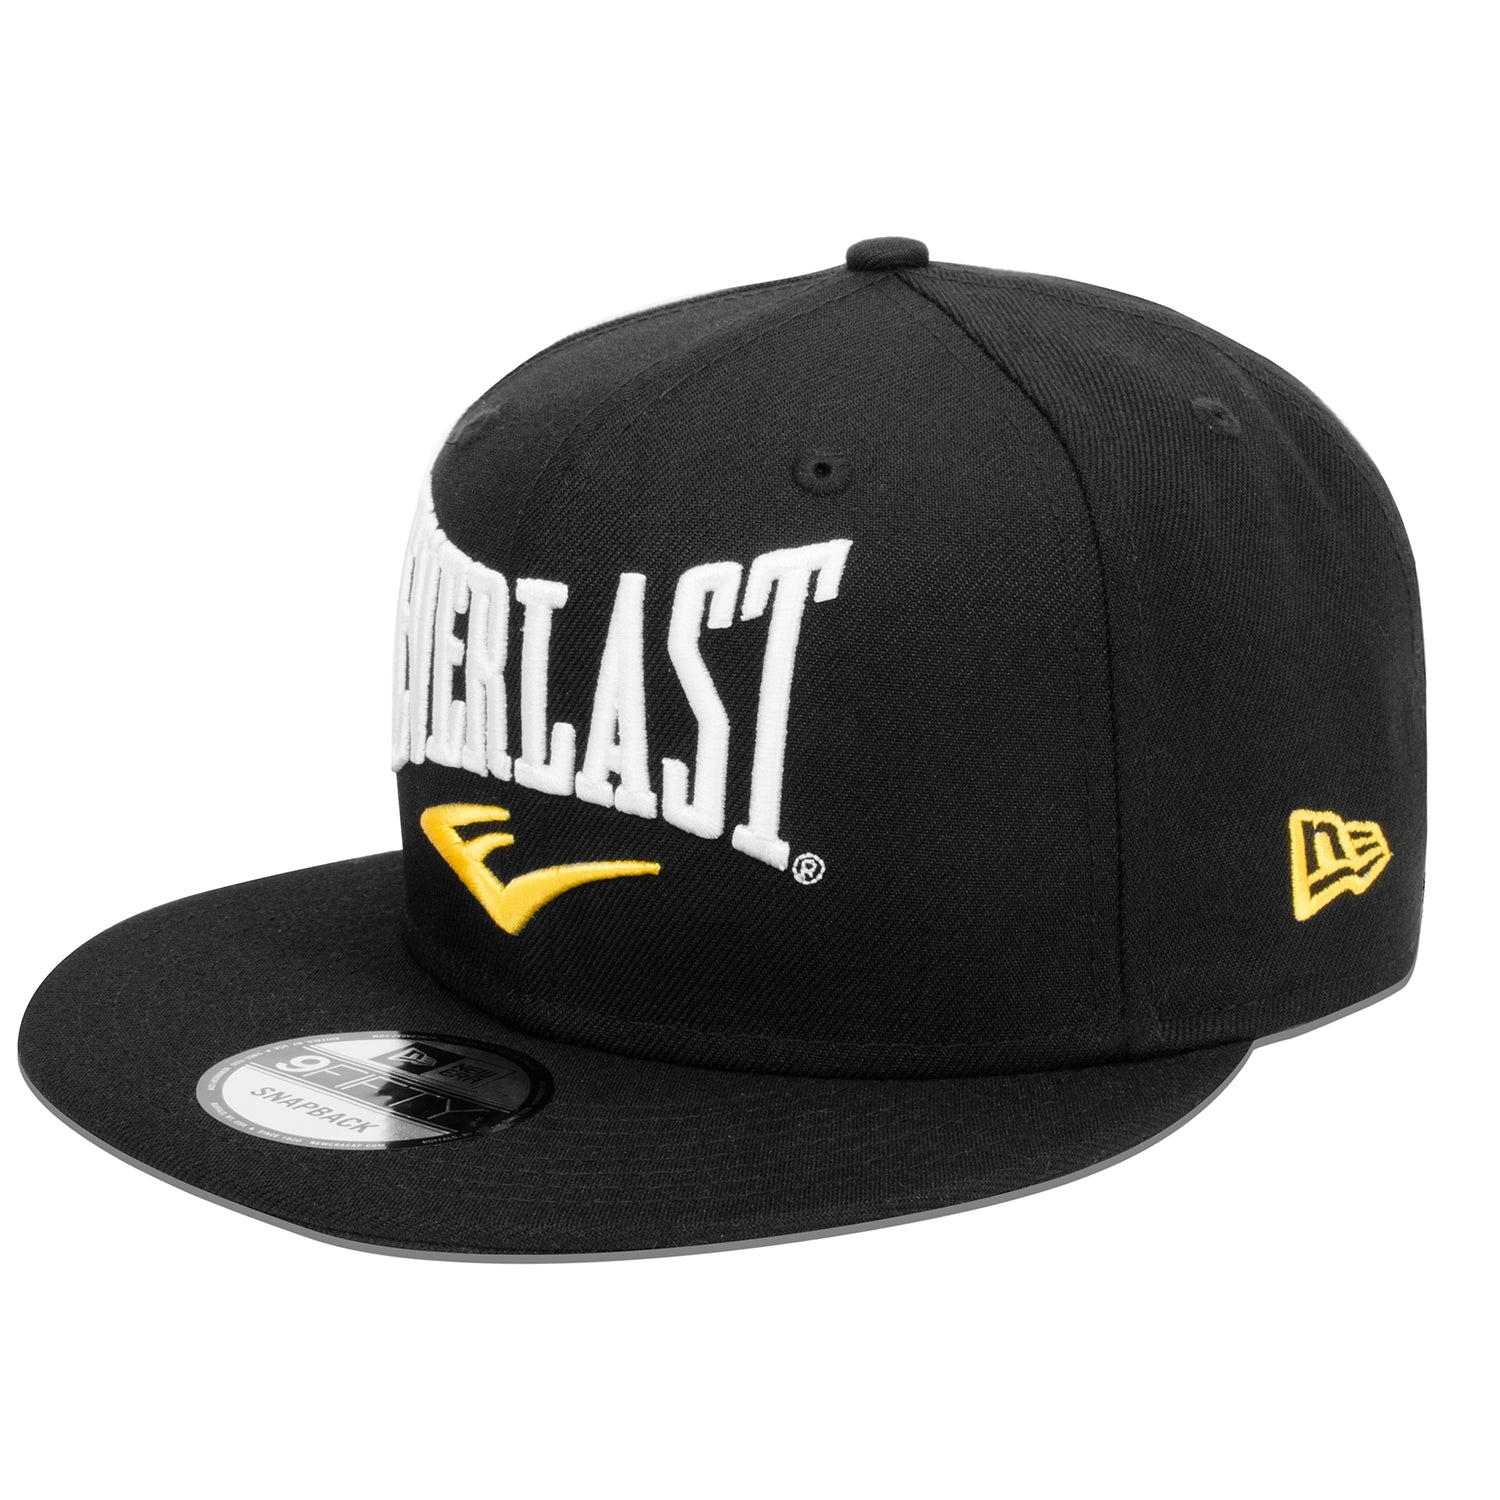 Everlast New Era 9FIFTY Black Snapback Logo Cap – Everlast Canada b08240702906